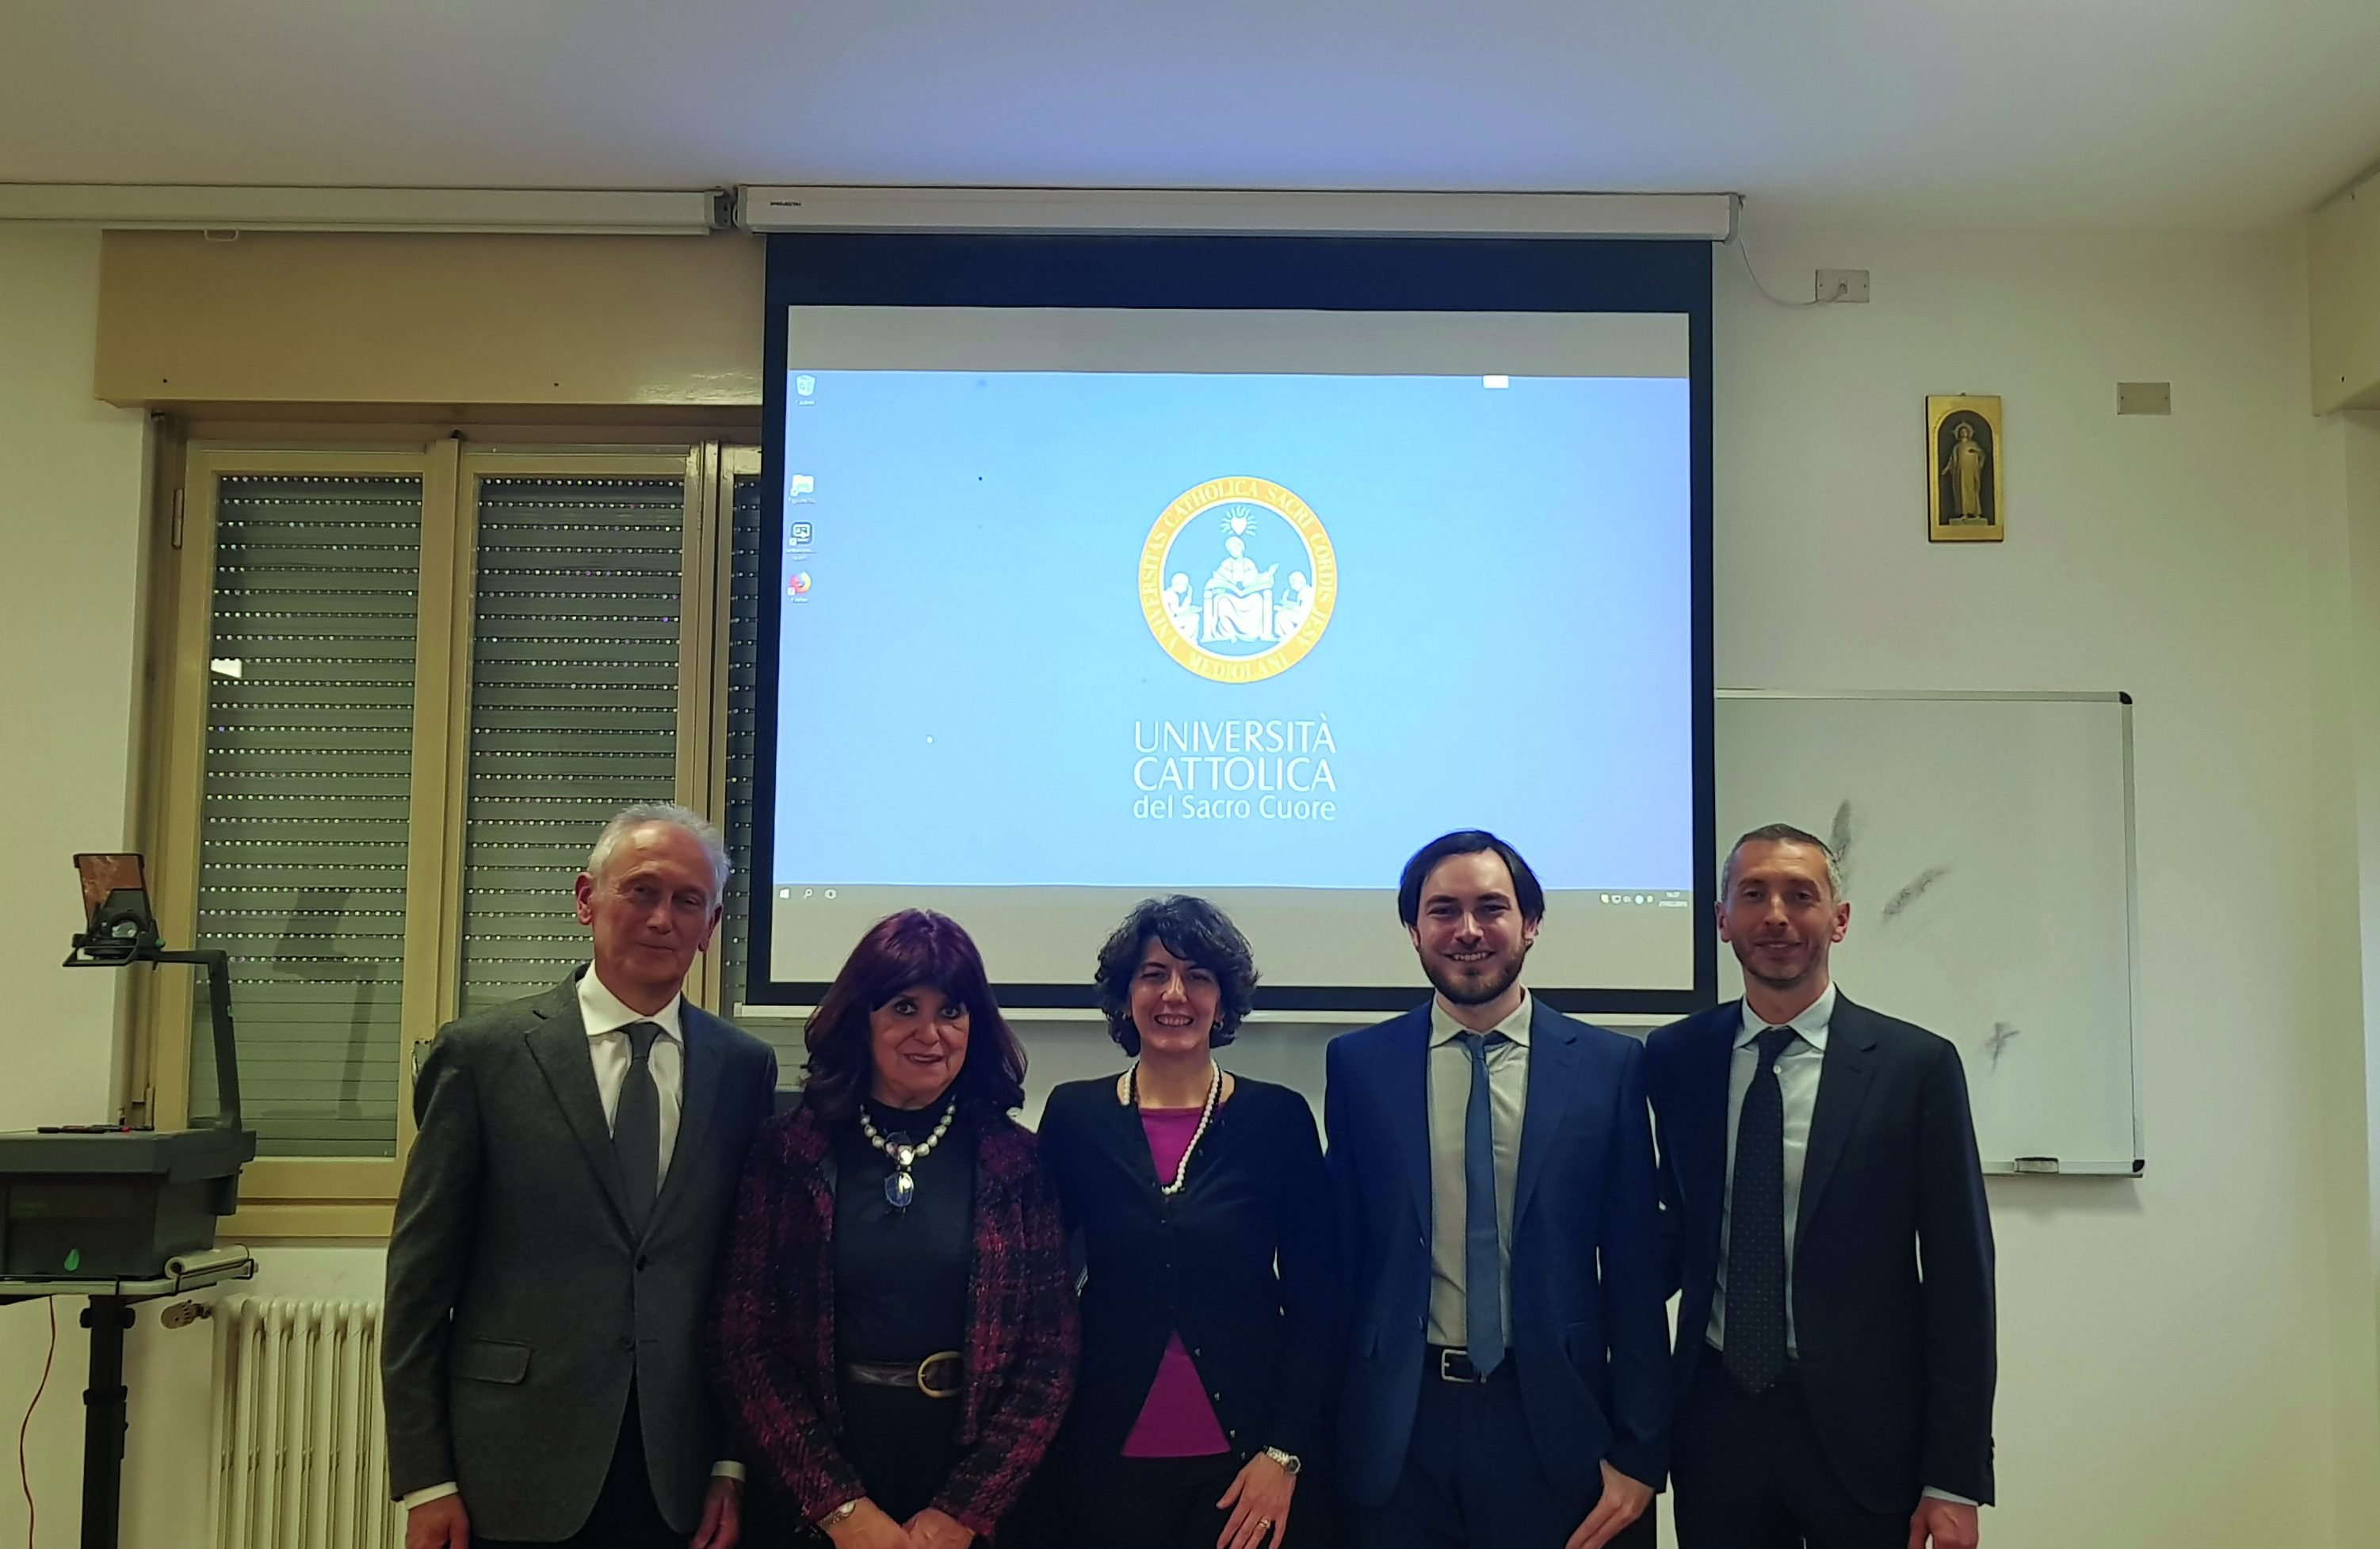 Marketing B2B, lezione con Patrizia Musso in Università Cattolica